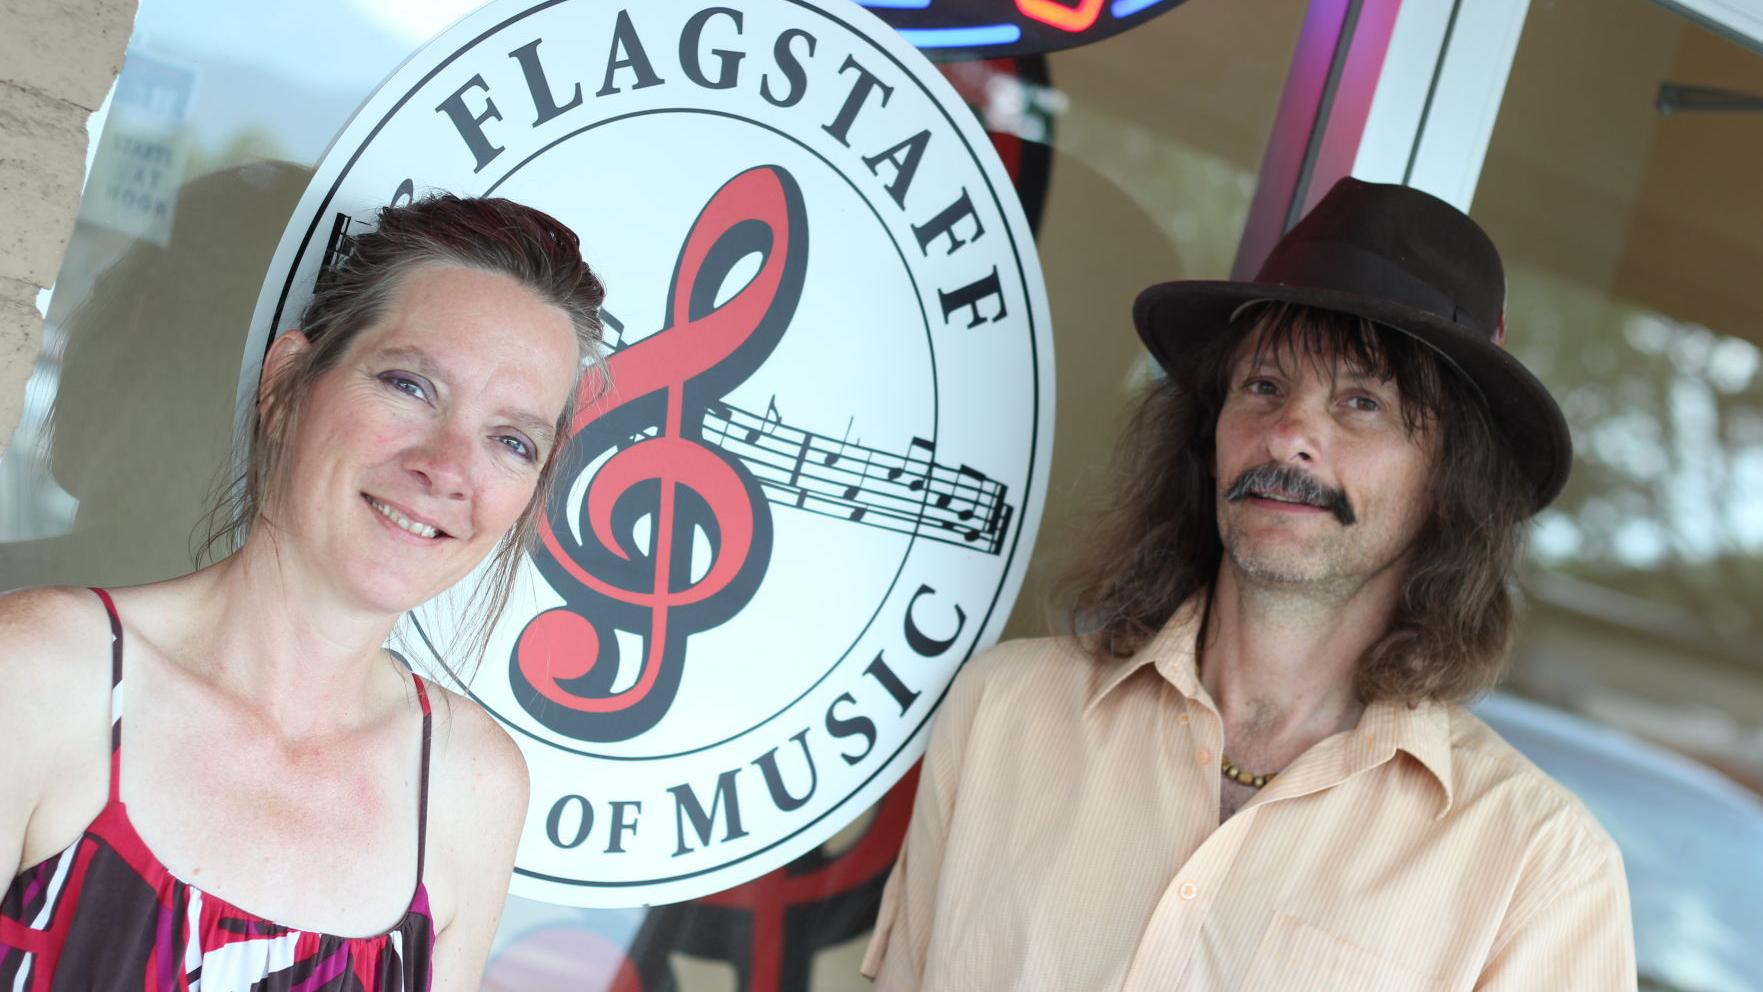 East Flagstaff offers hub for music education